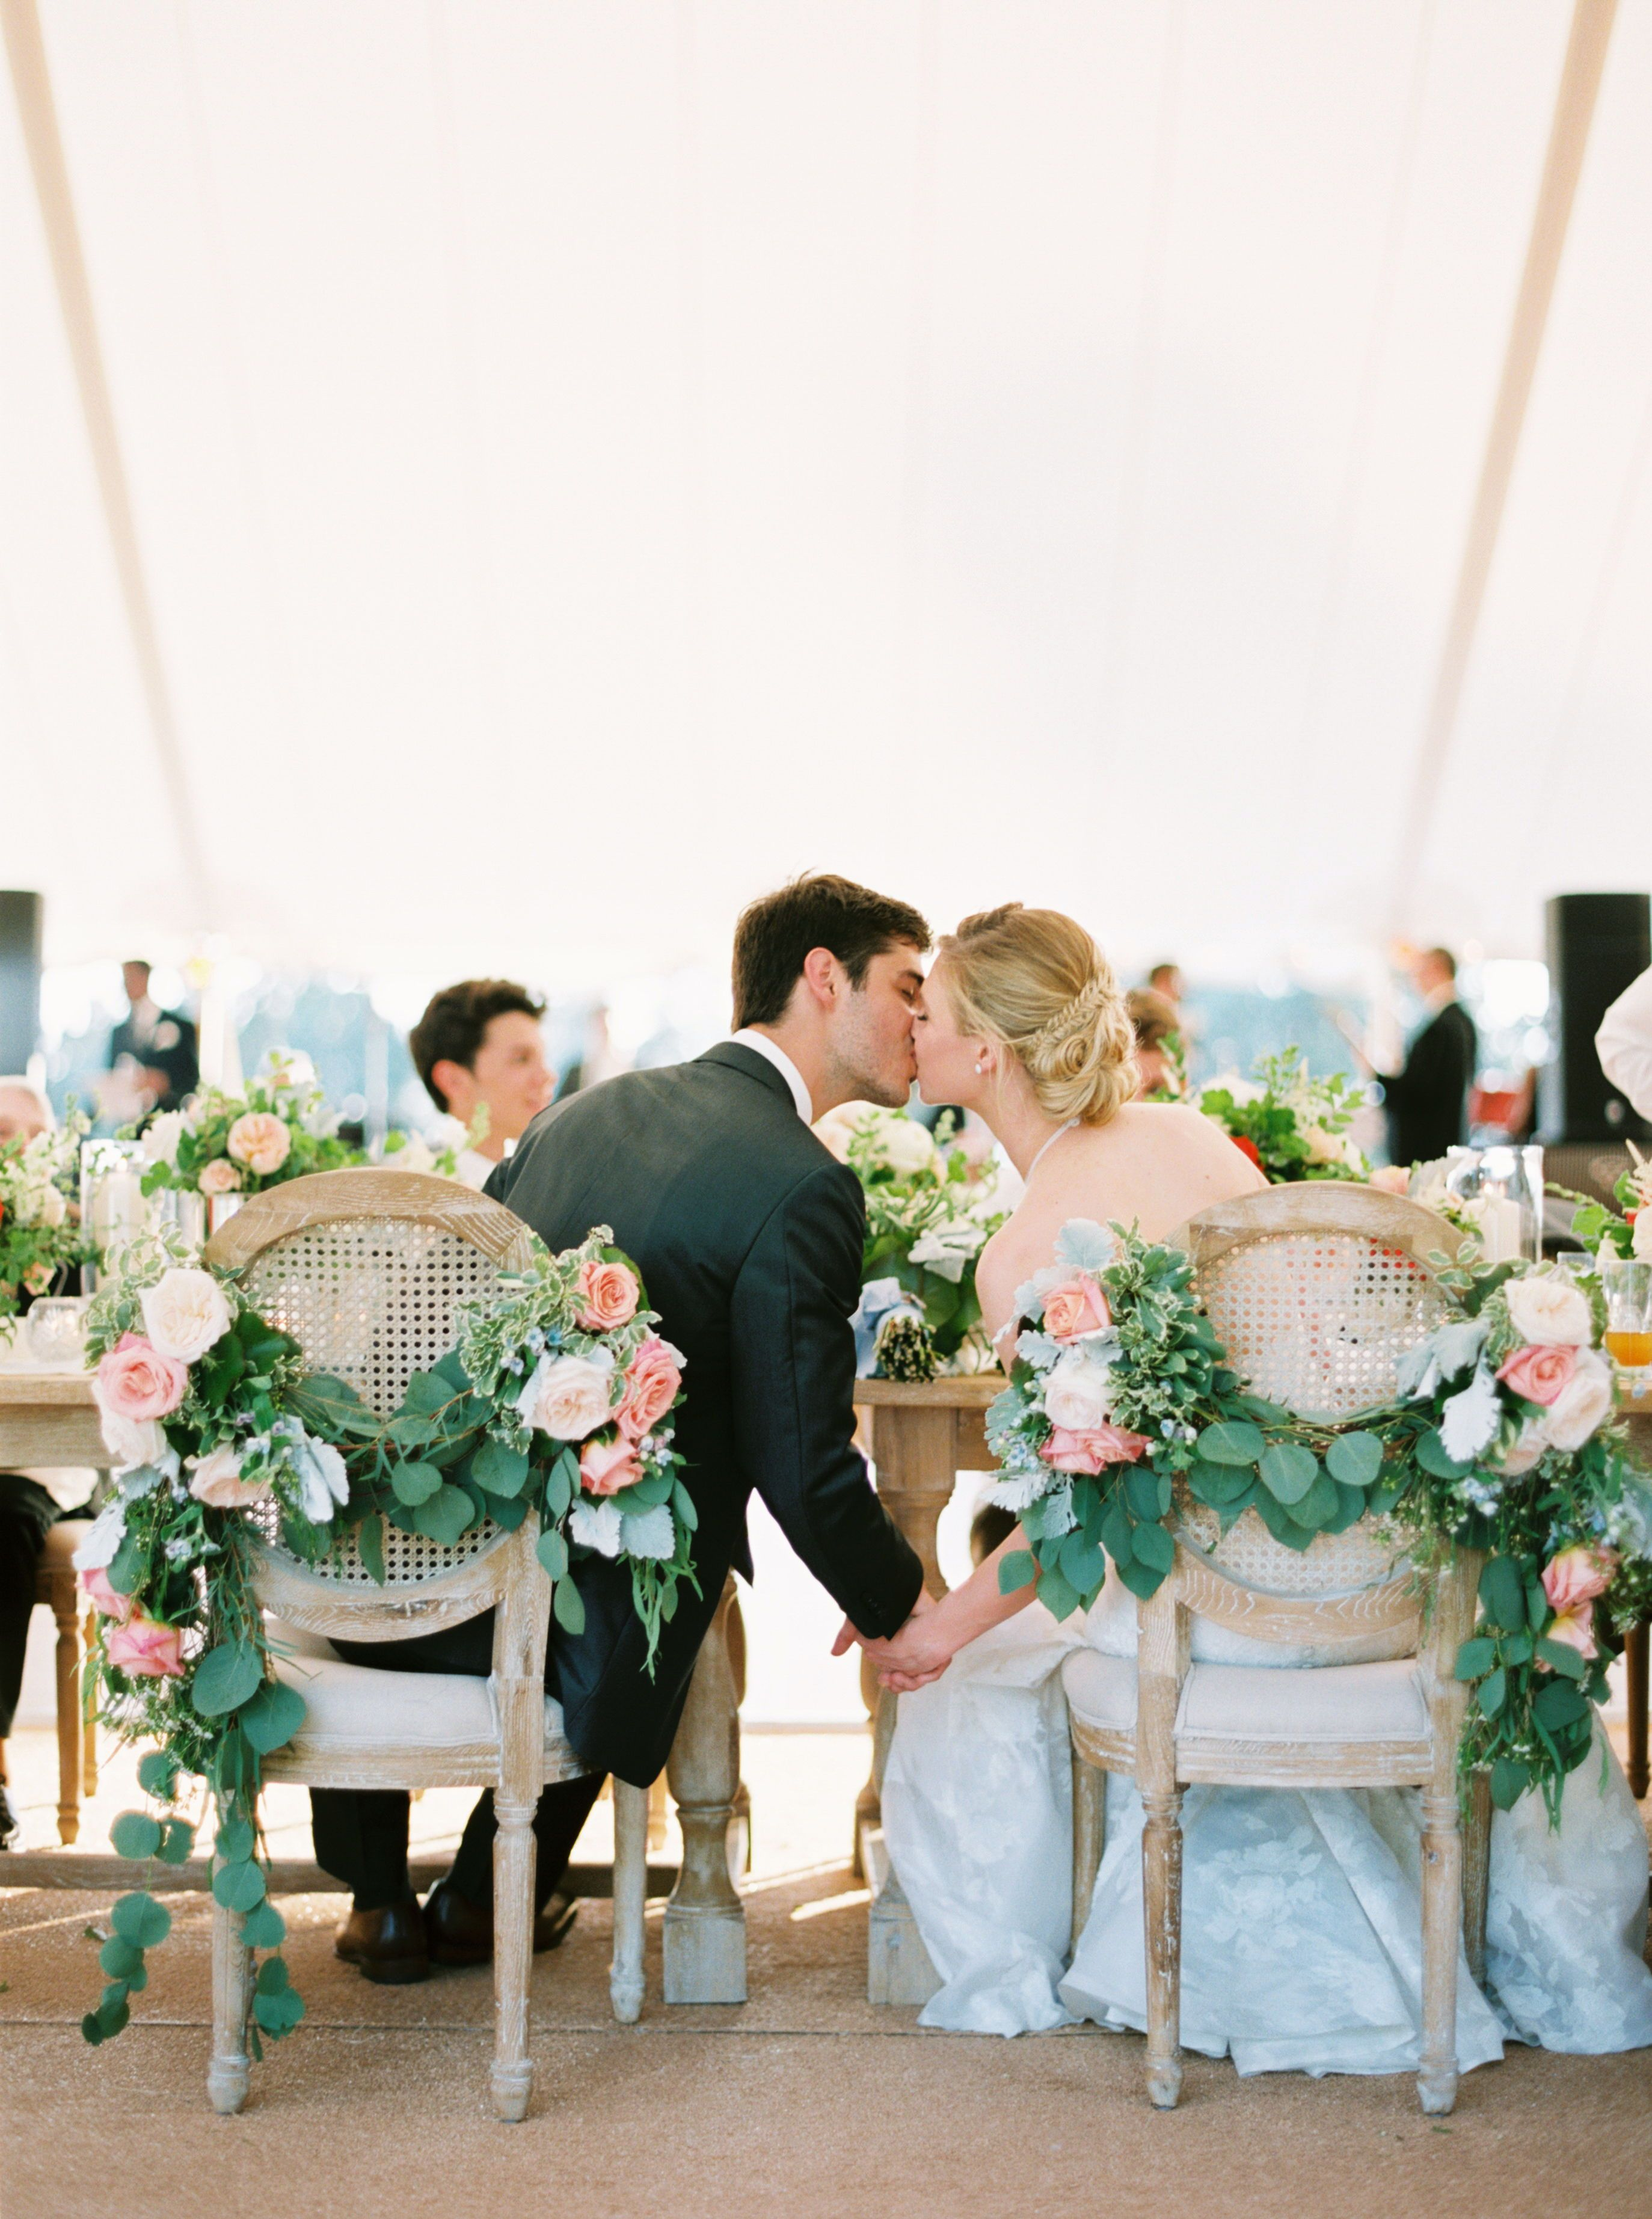 romantic floral wedding sweetheart seating chairs rentals white rh pinterest com